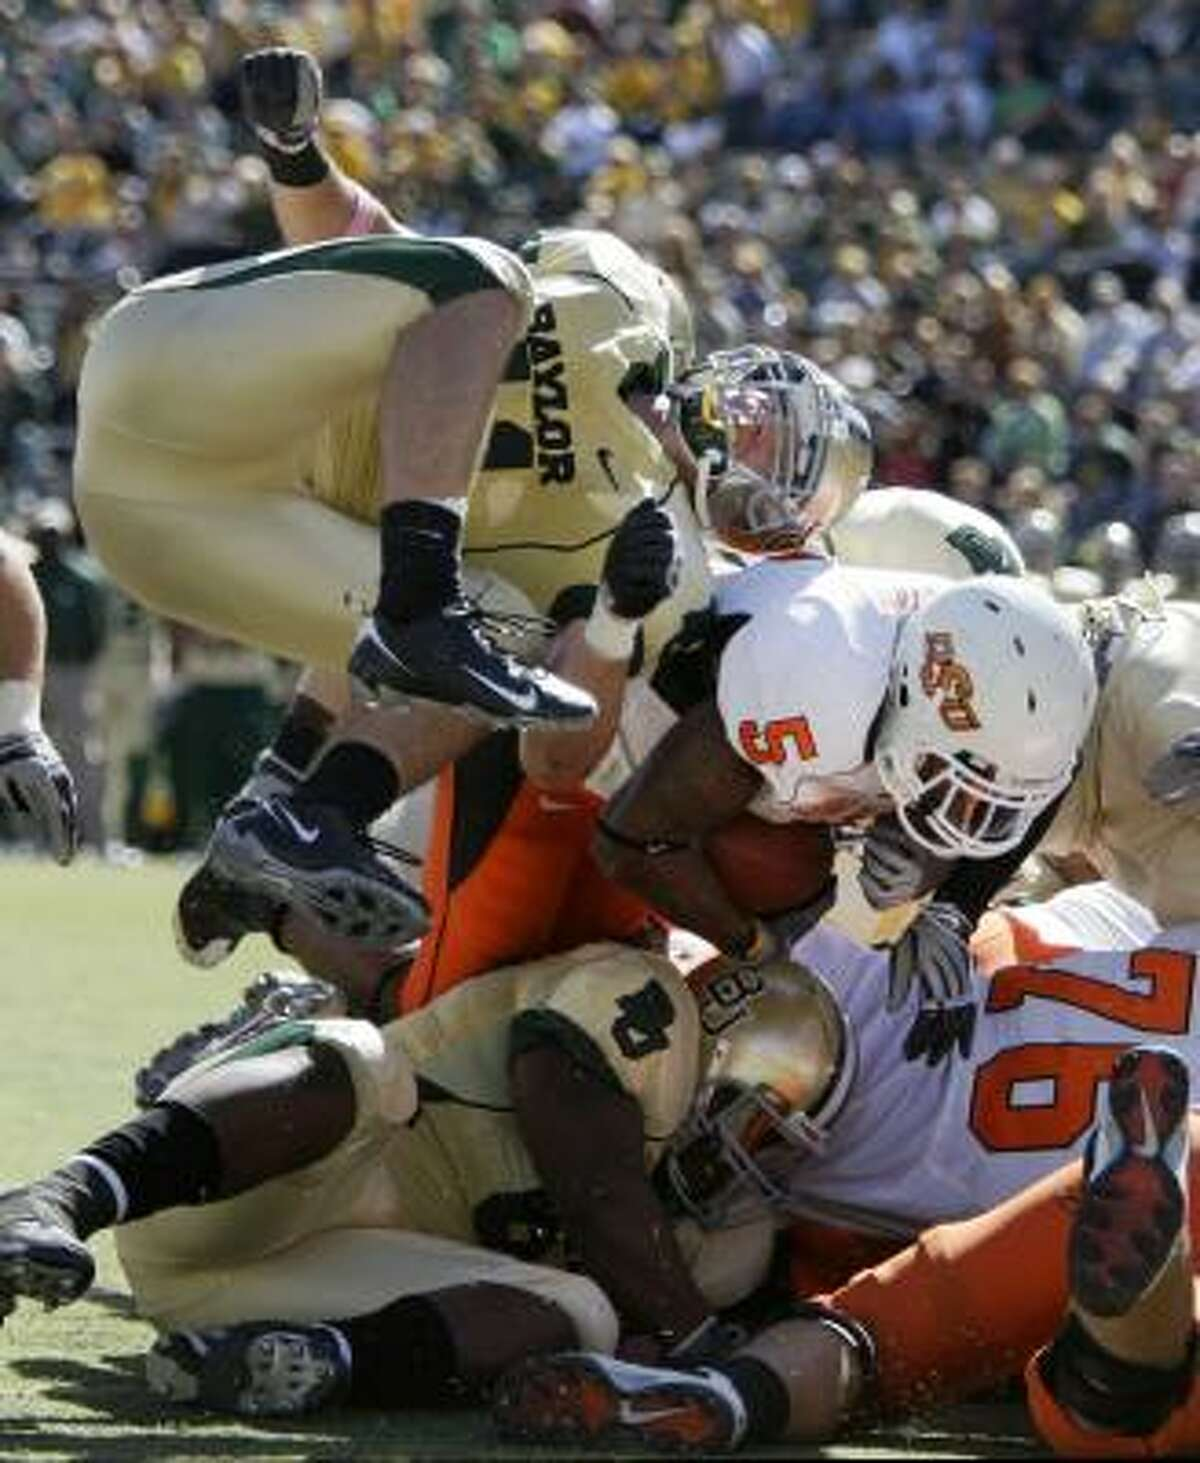 Baylor linebacker Joe Pawelek attempts to stop Oklahoma State running back Keith Toston as he pushes through for a touchdown during the second half Saturday in Waco.